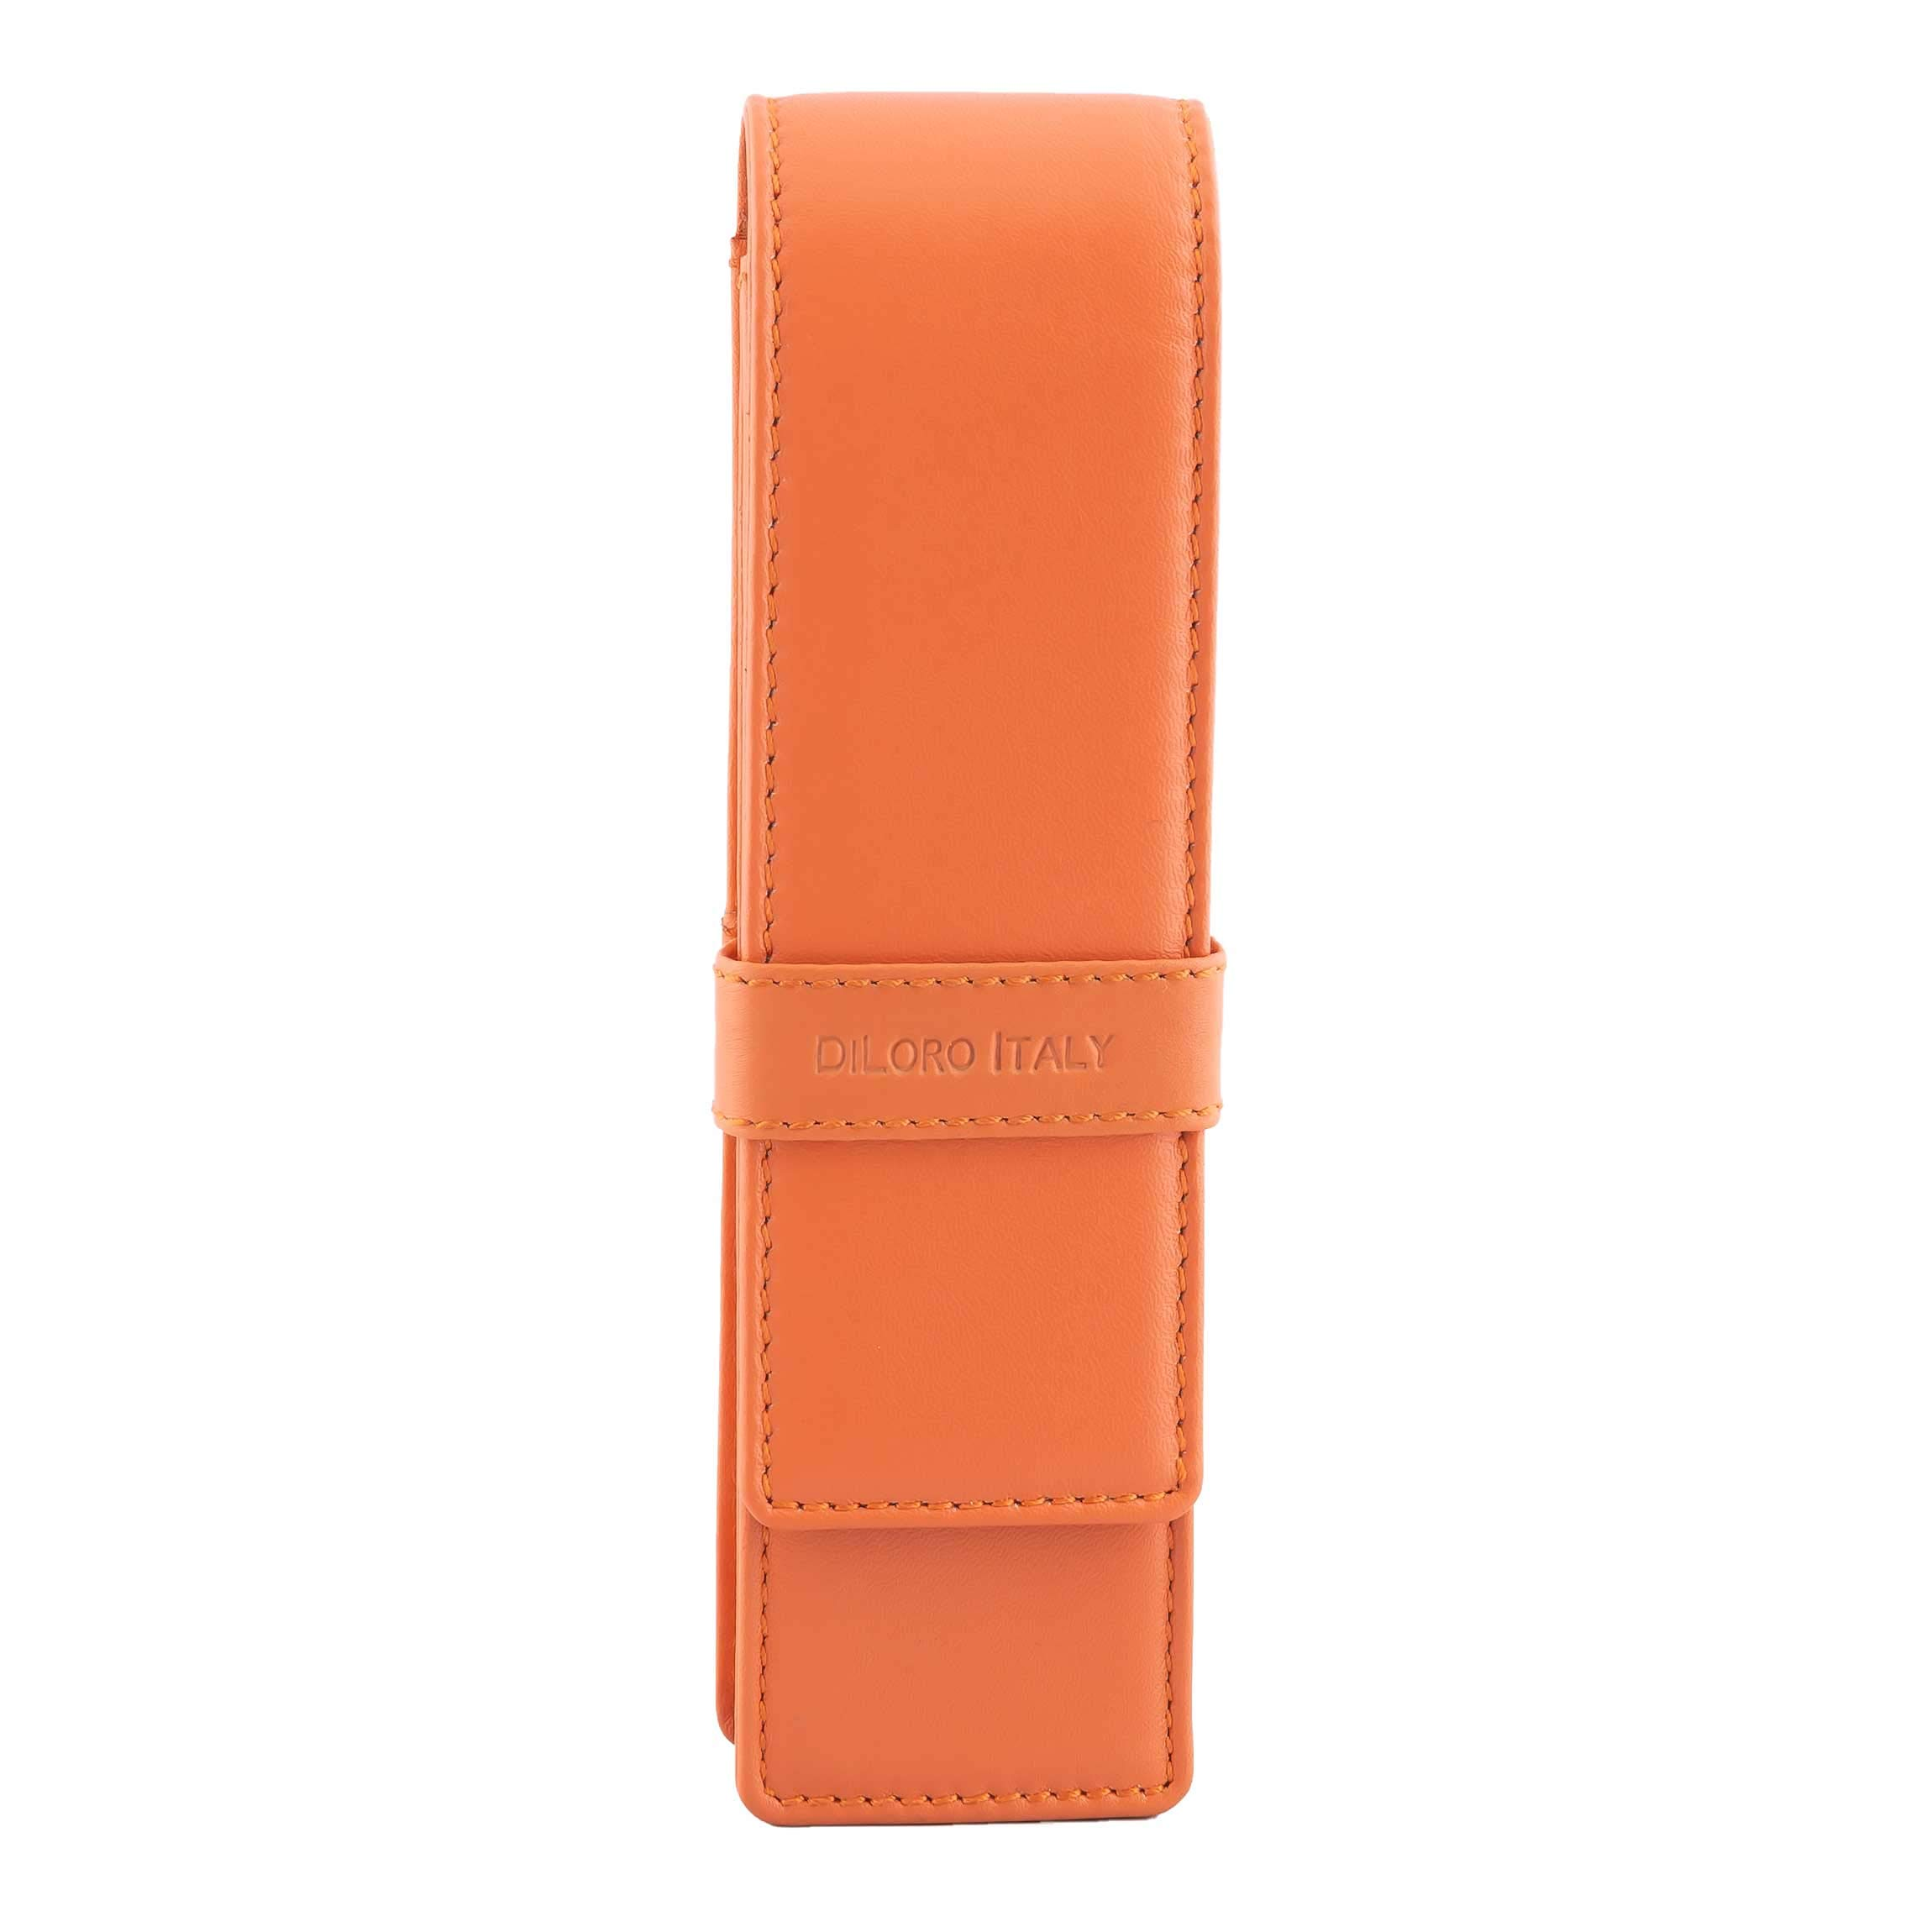 DiLoro Leather Pen Case Pouch Holder for Two Fountain Pens Ballpoint Rollerball Pen or Pencils (Orange)